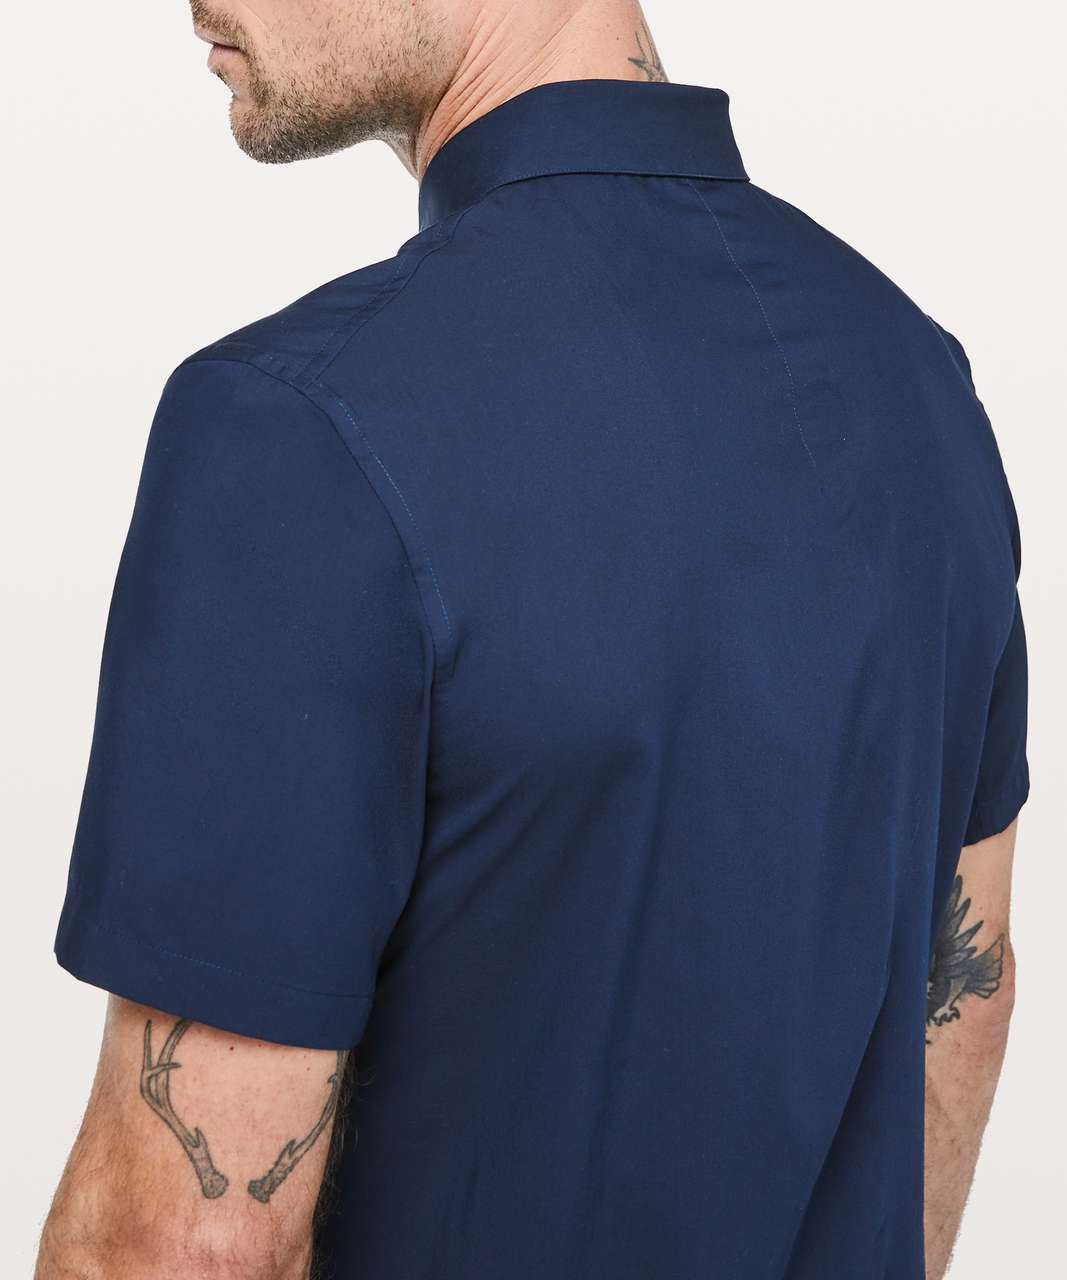 Lululemon Down To The Wire Short Sleeve Shirt - True Navy